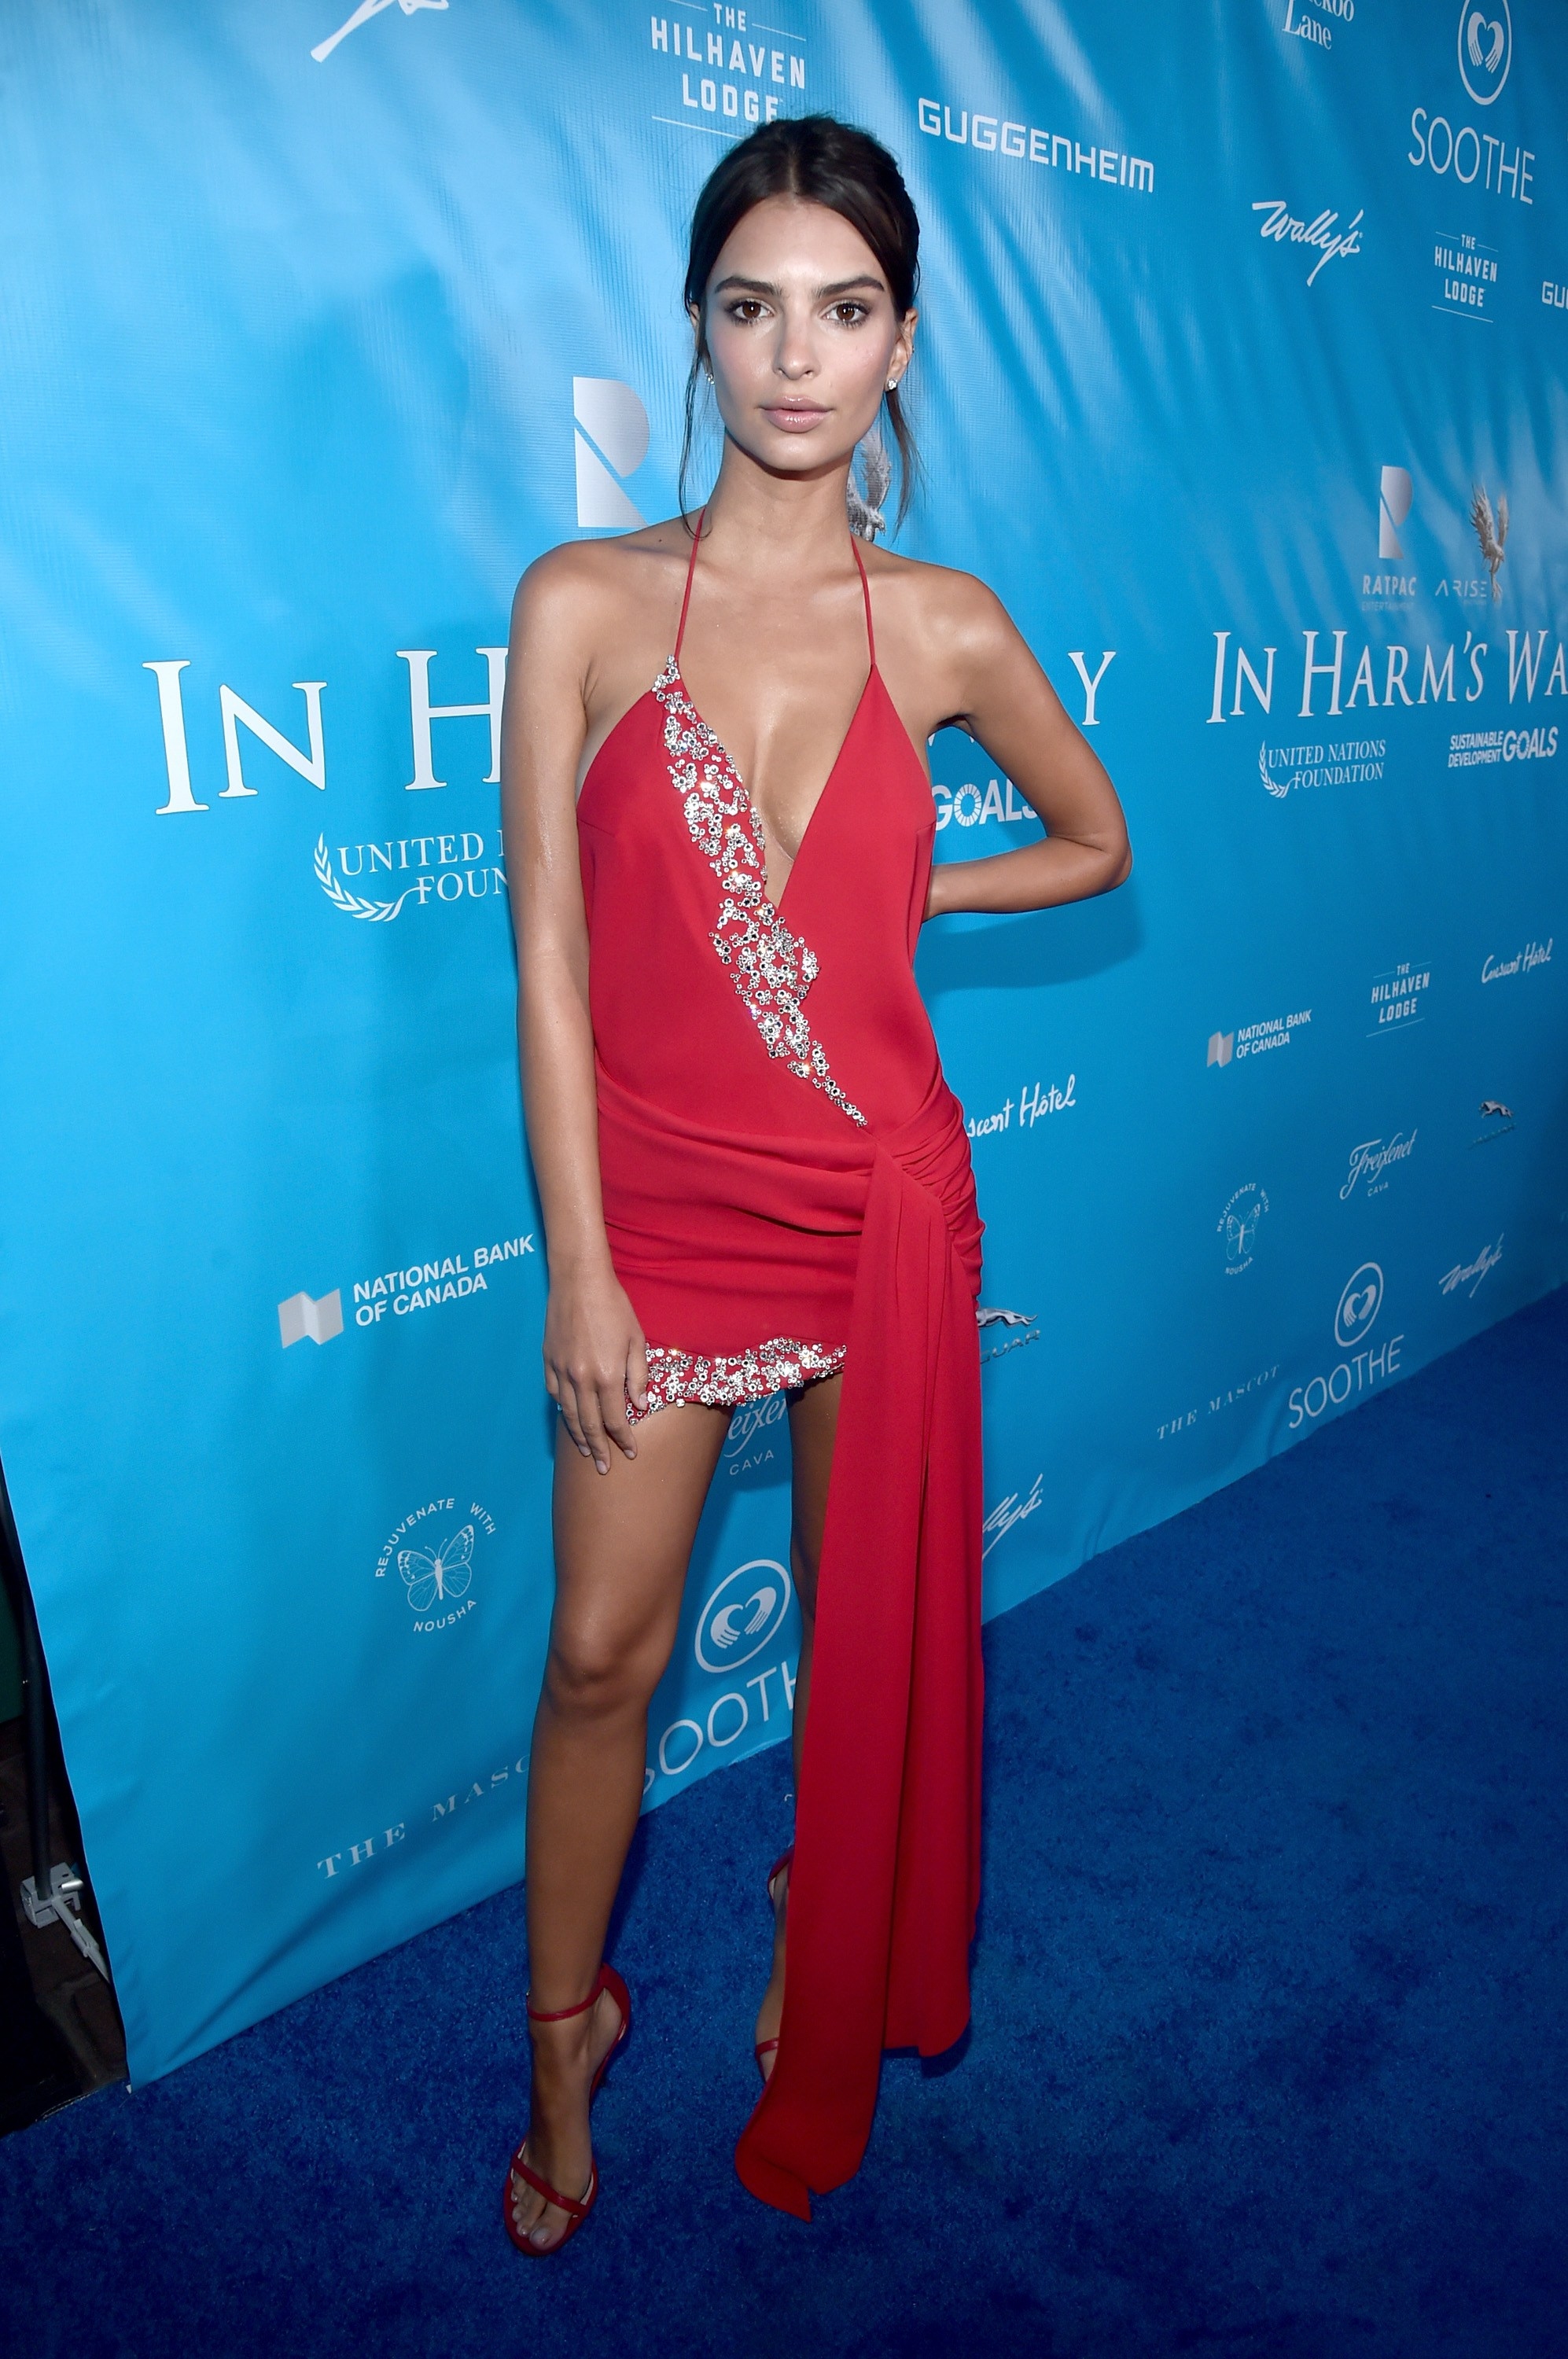 Best Dressed Red Carpet August 15 Emily Ratajkowski In Harm's Way Event